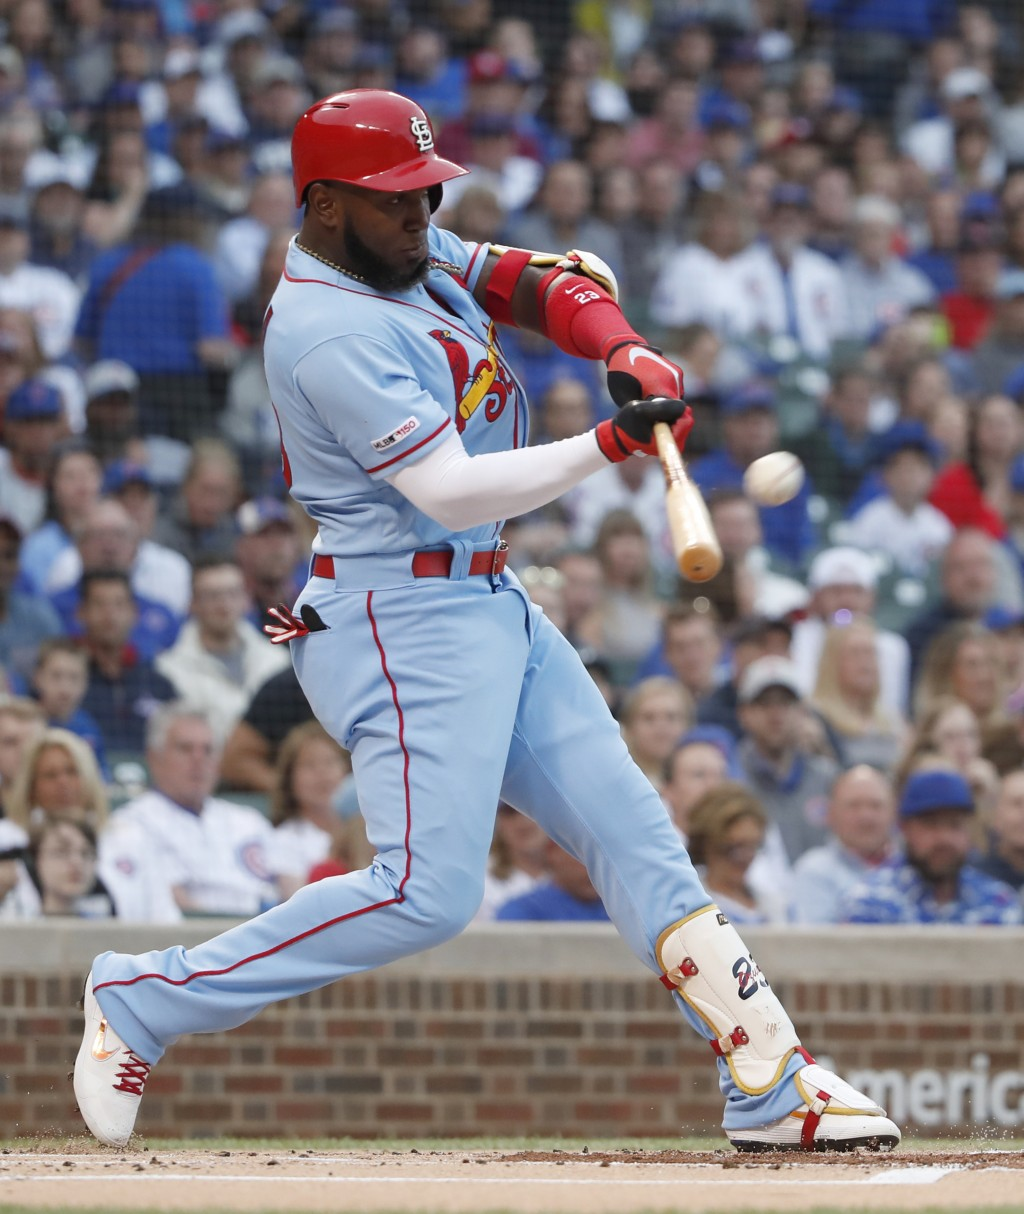 St. Louis Cardinals' Marcell Ozuna hits a three-run home run against the Chicago Cubs during the first inning of a baseball game Saturday, June 8, 201